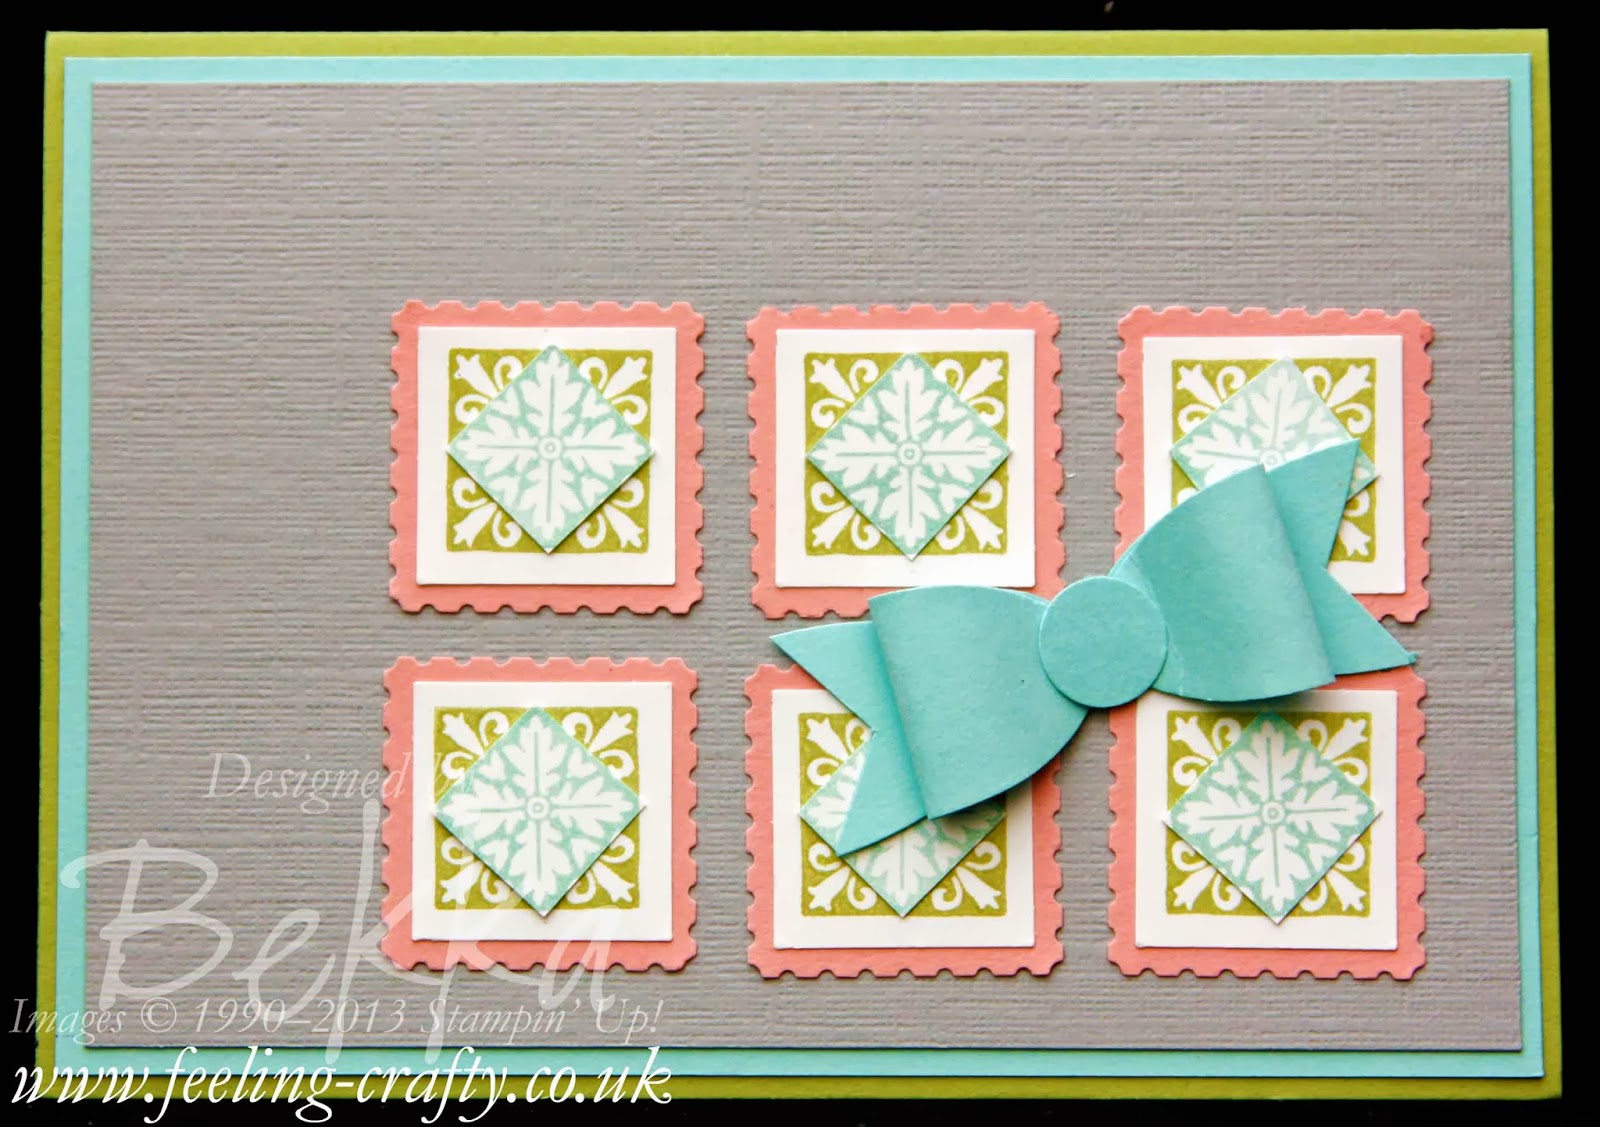 Hello Lovely Bow Card with a tutorial on how to make the bow - check it out!